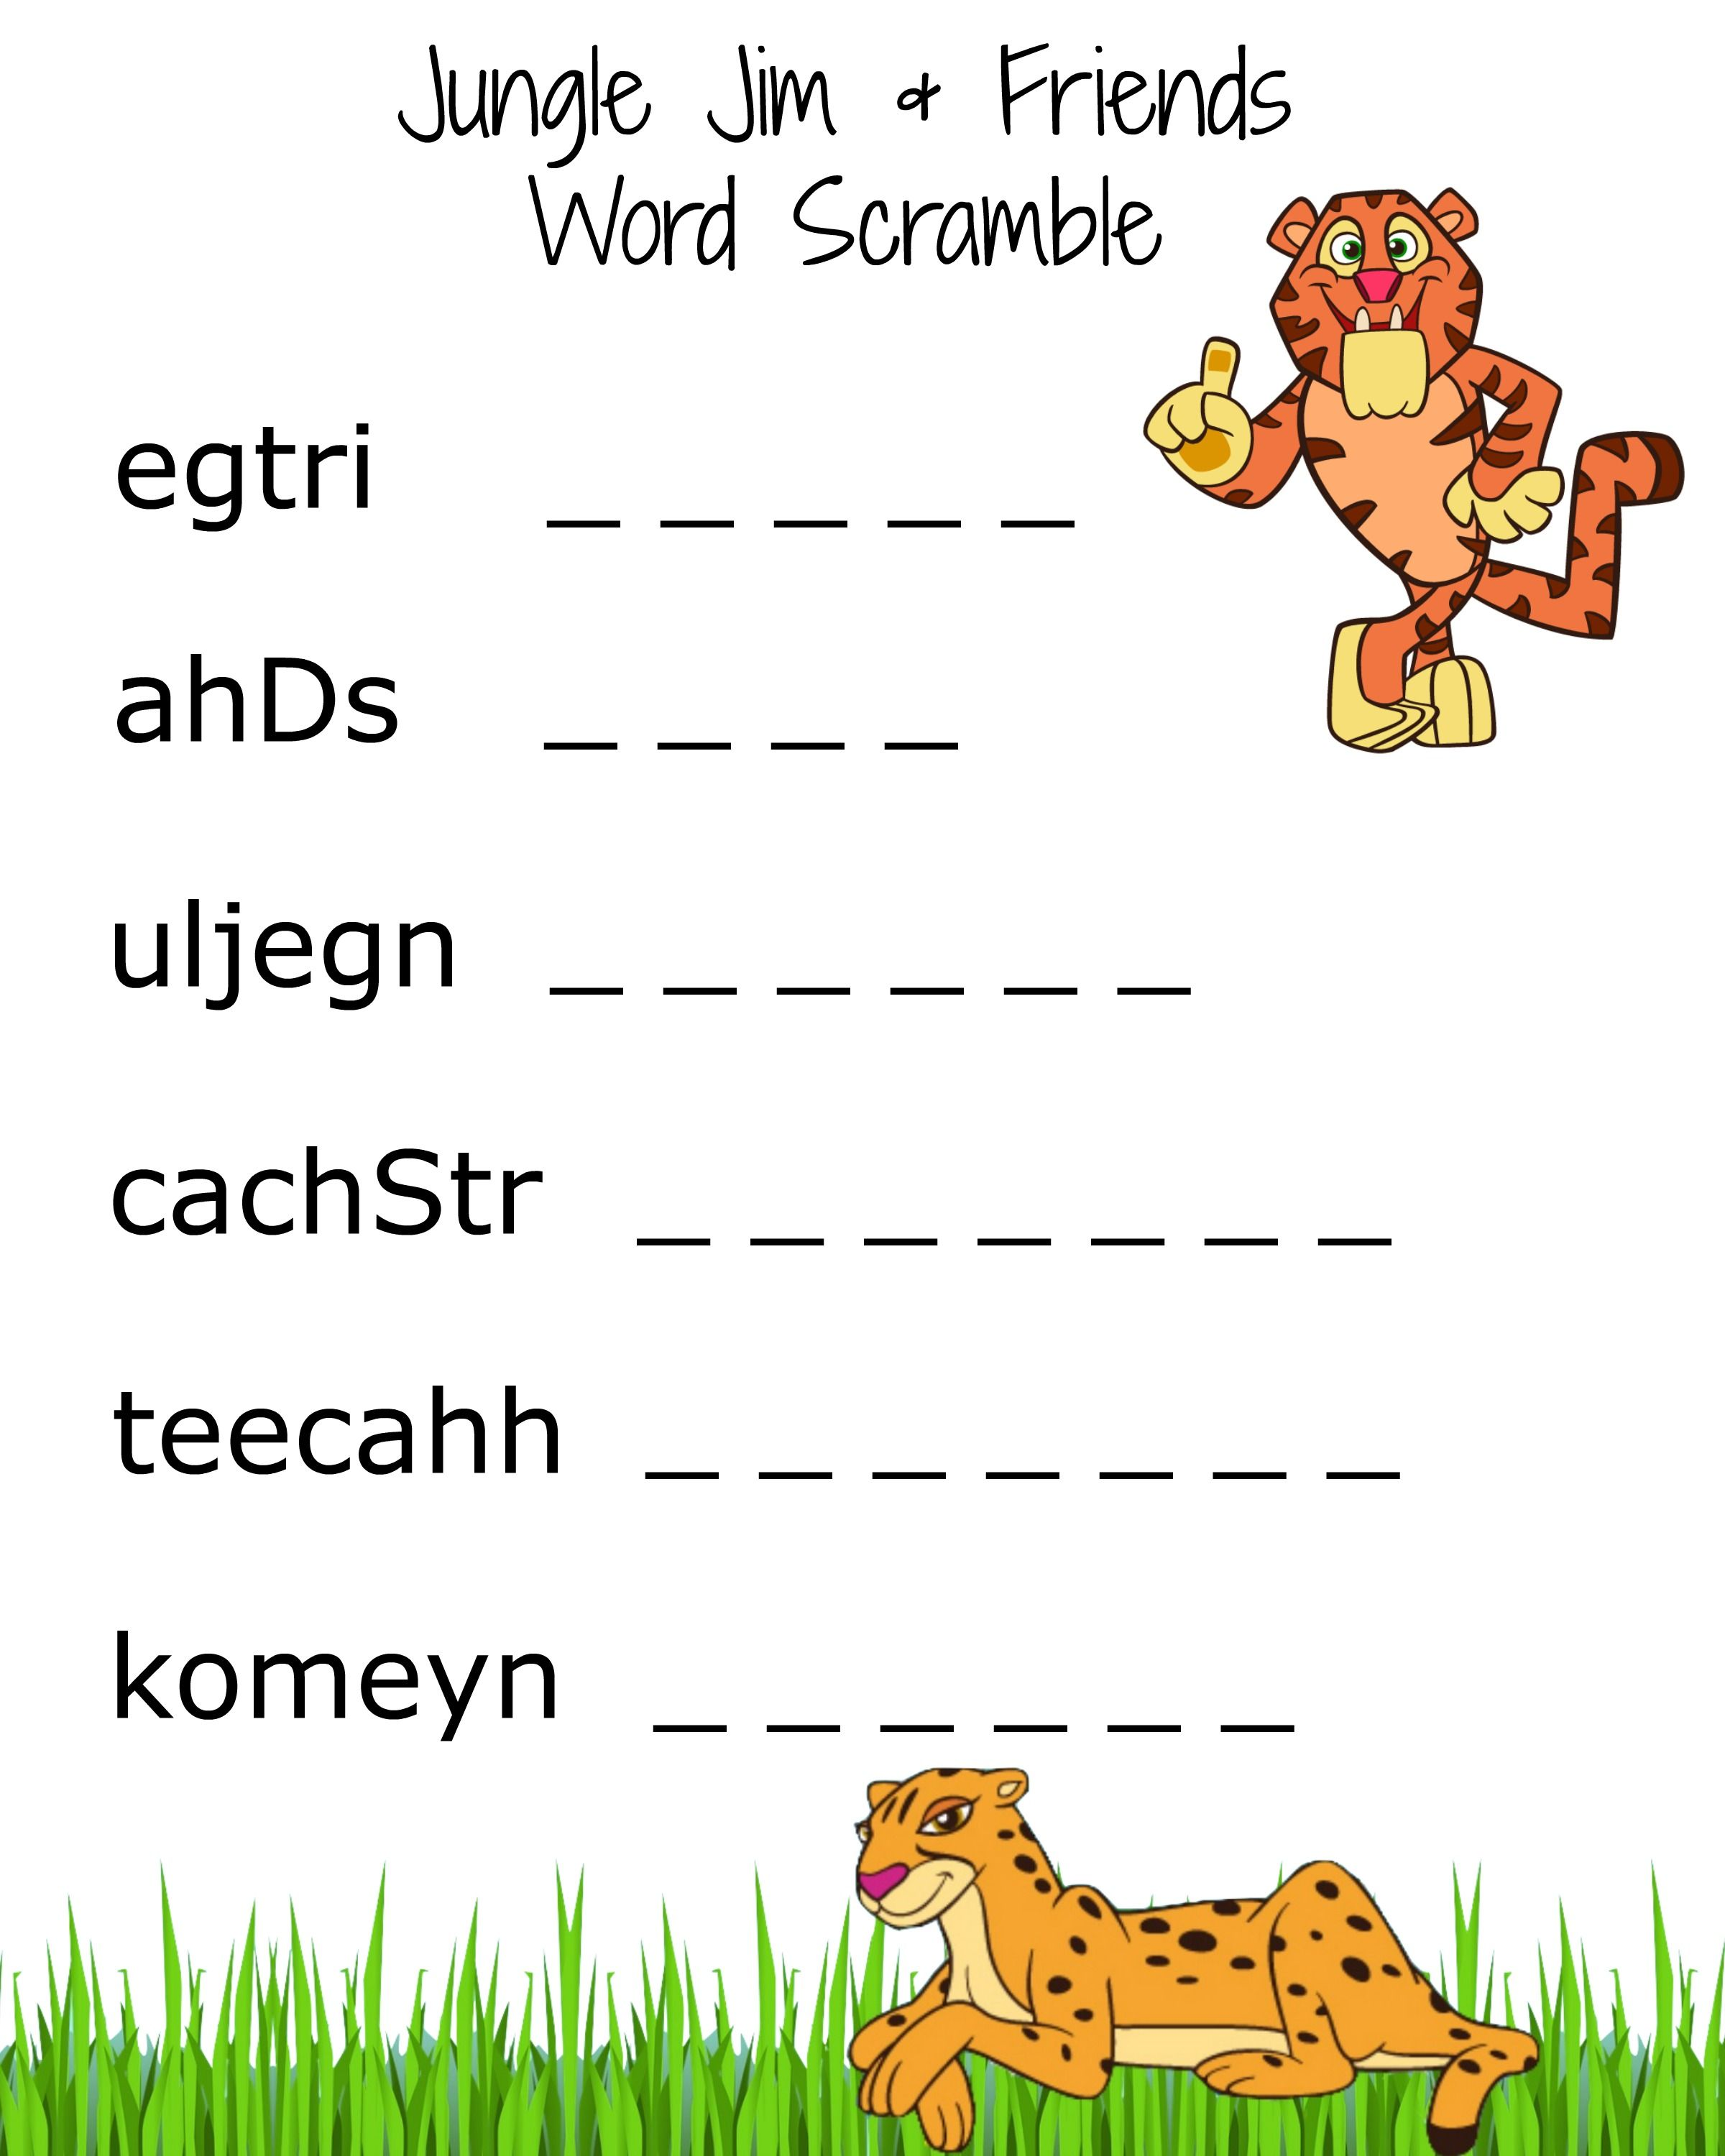 Fun And Free Printable Word Scramble About Jungle Jim And